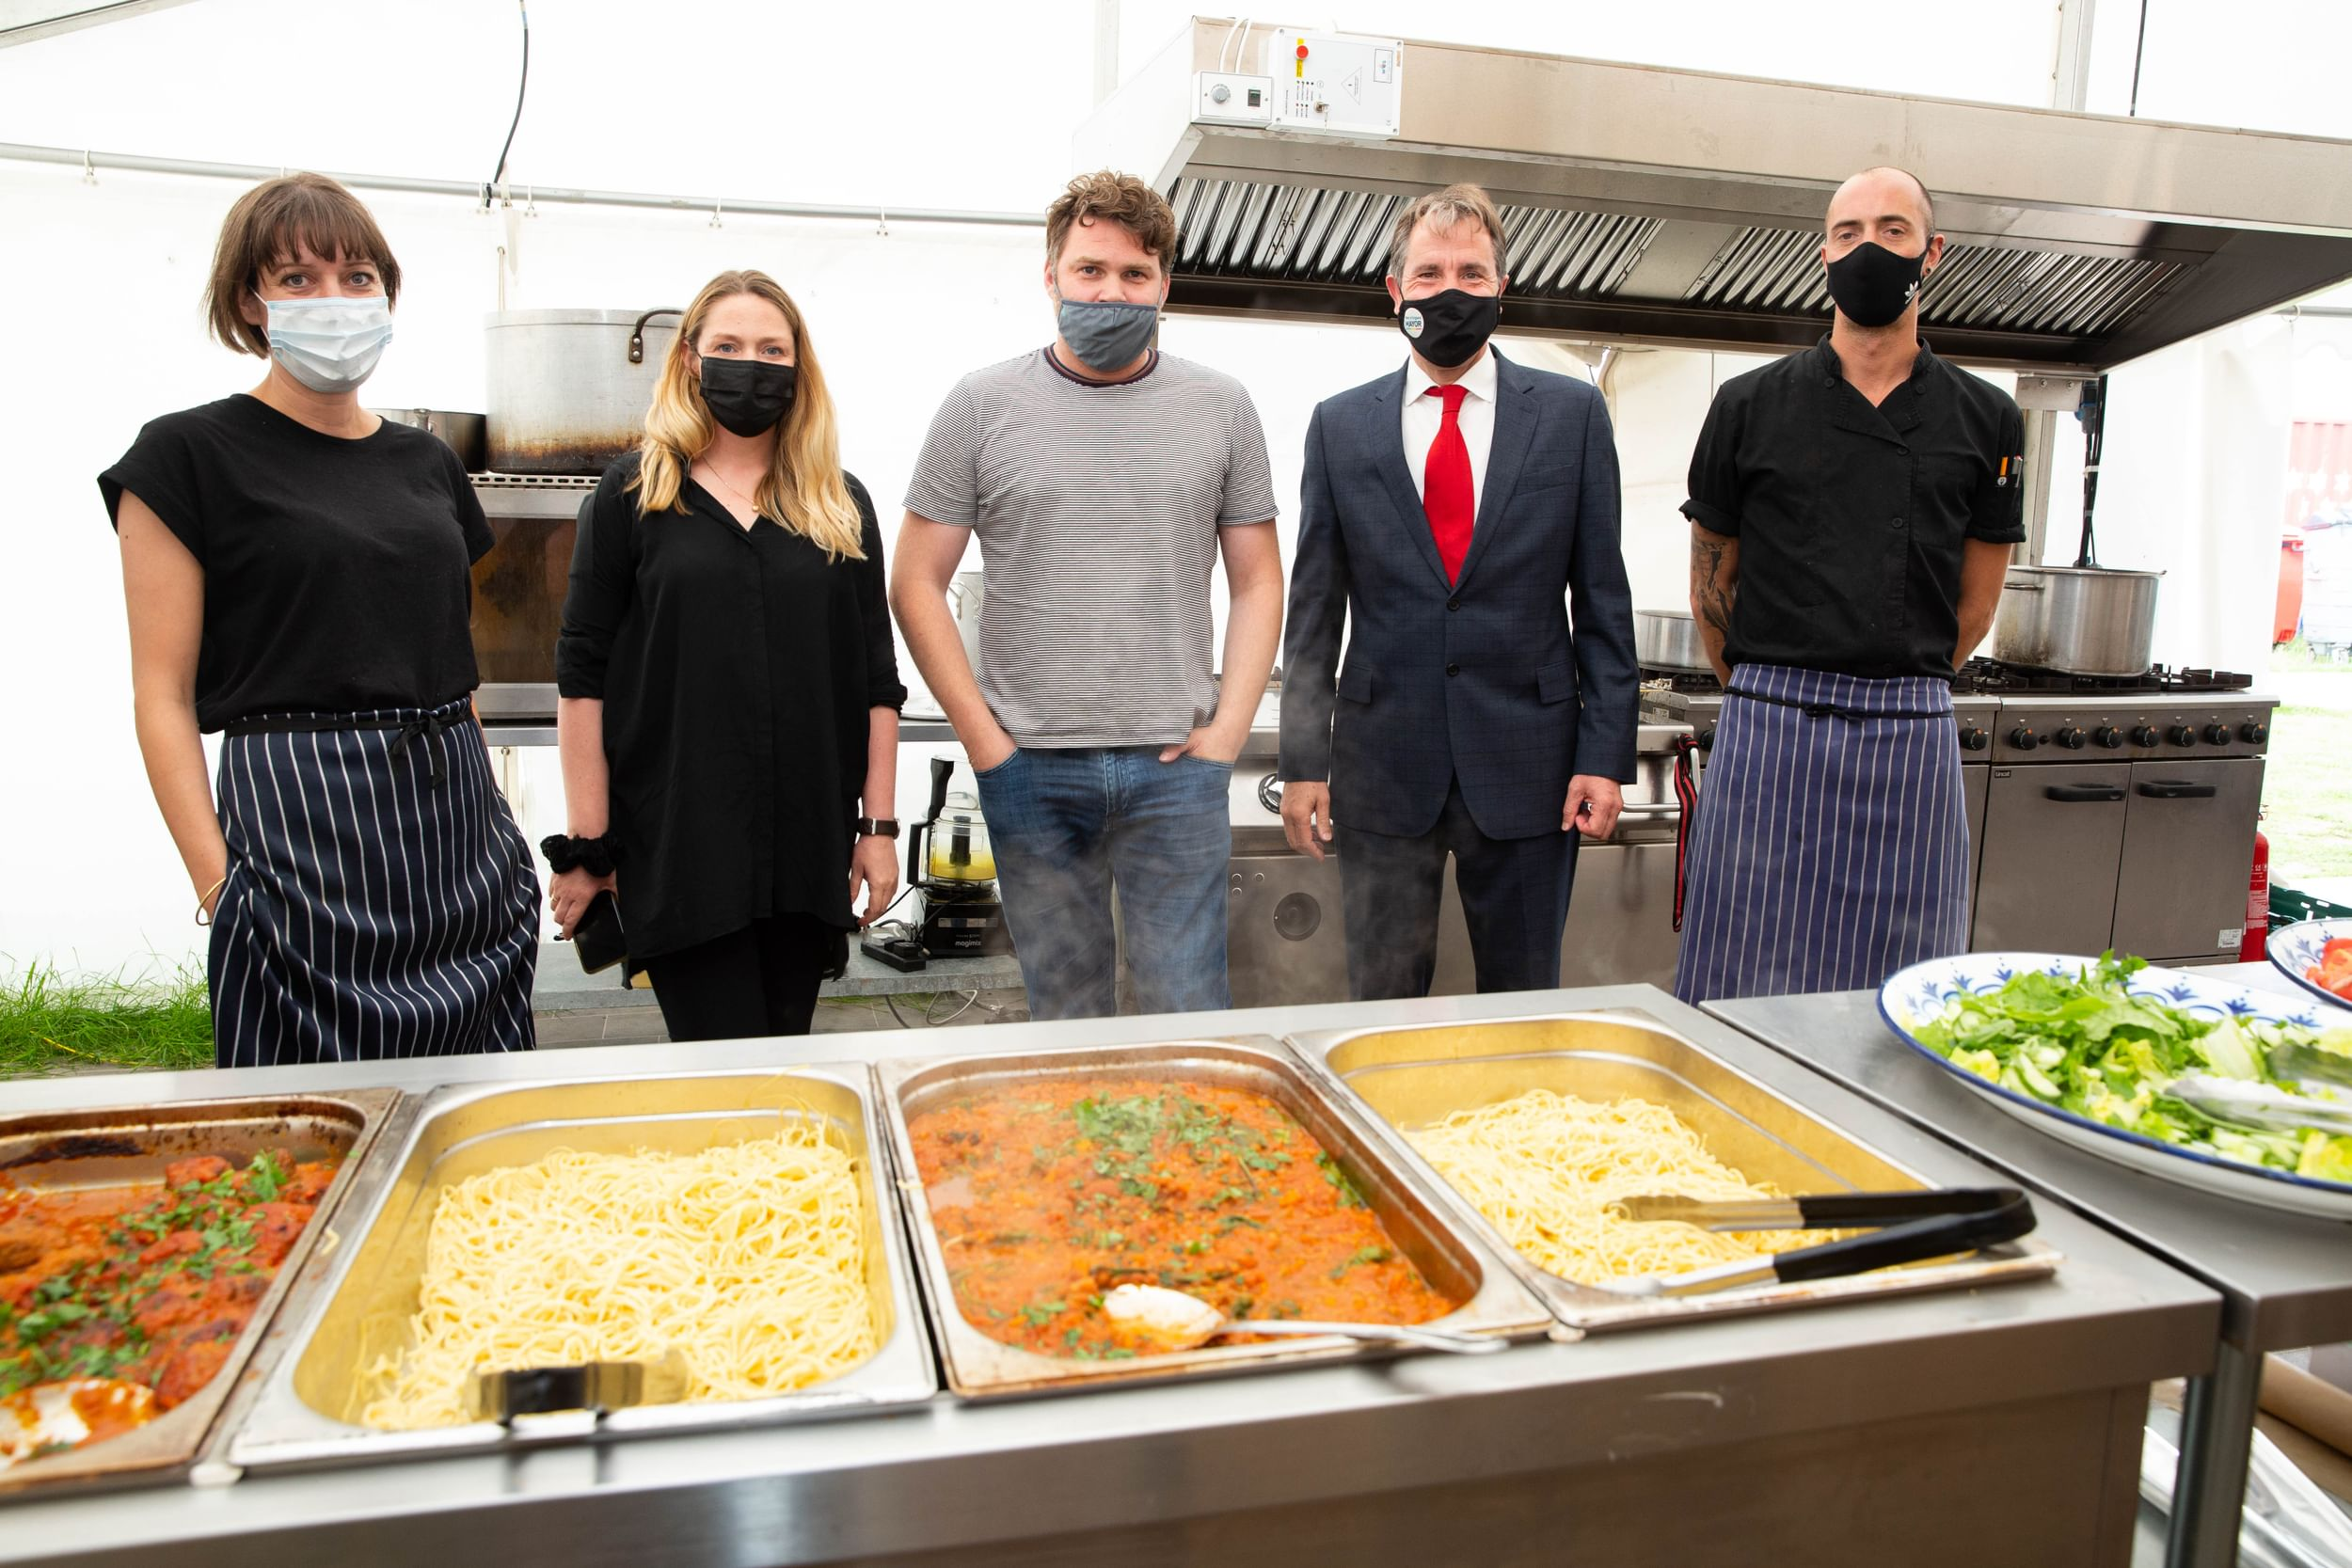 Metro Mayor with others in a kitchen